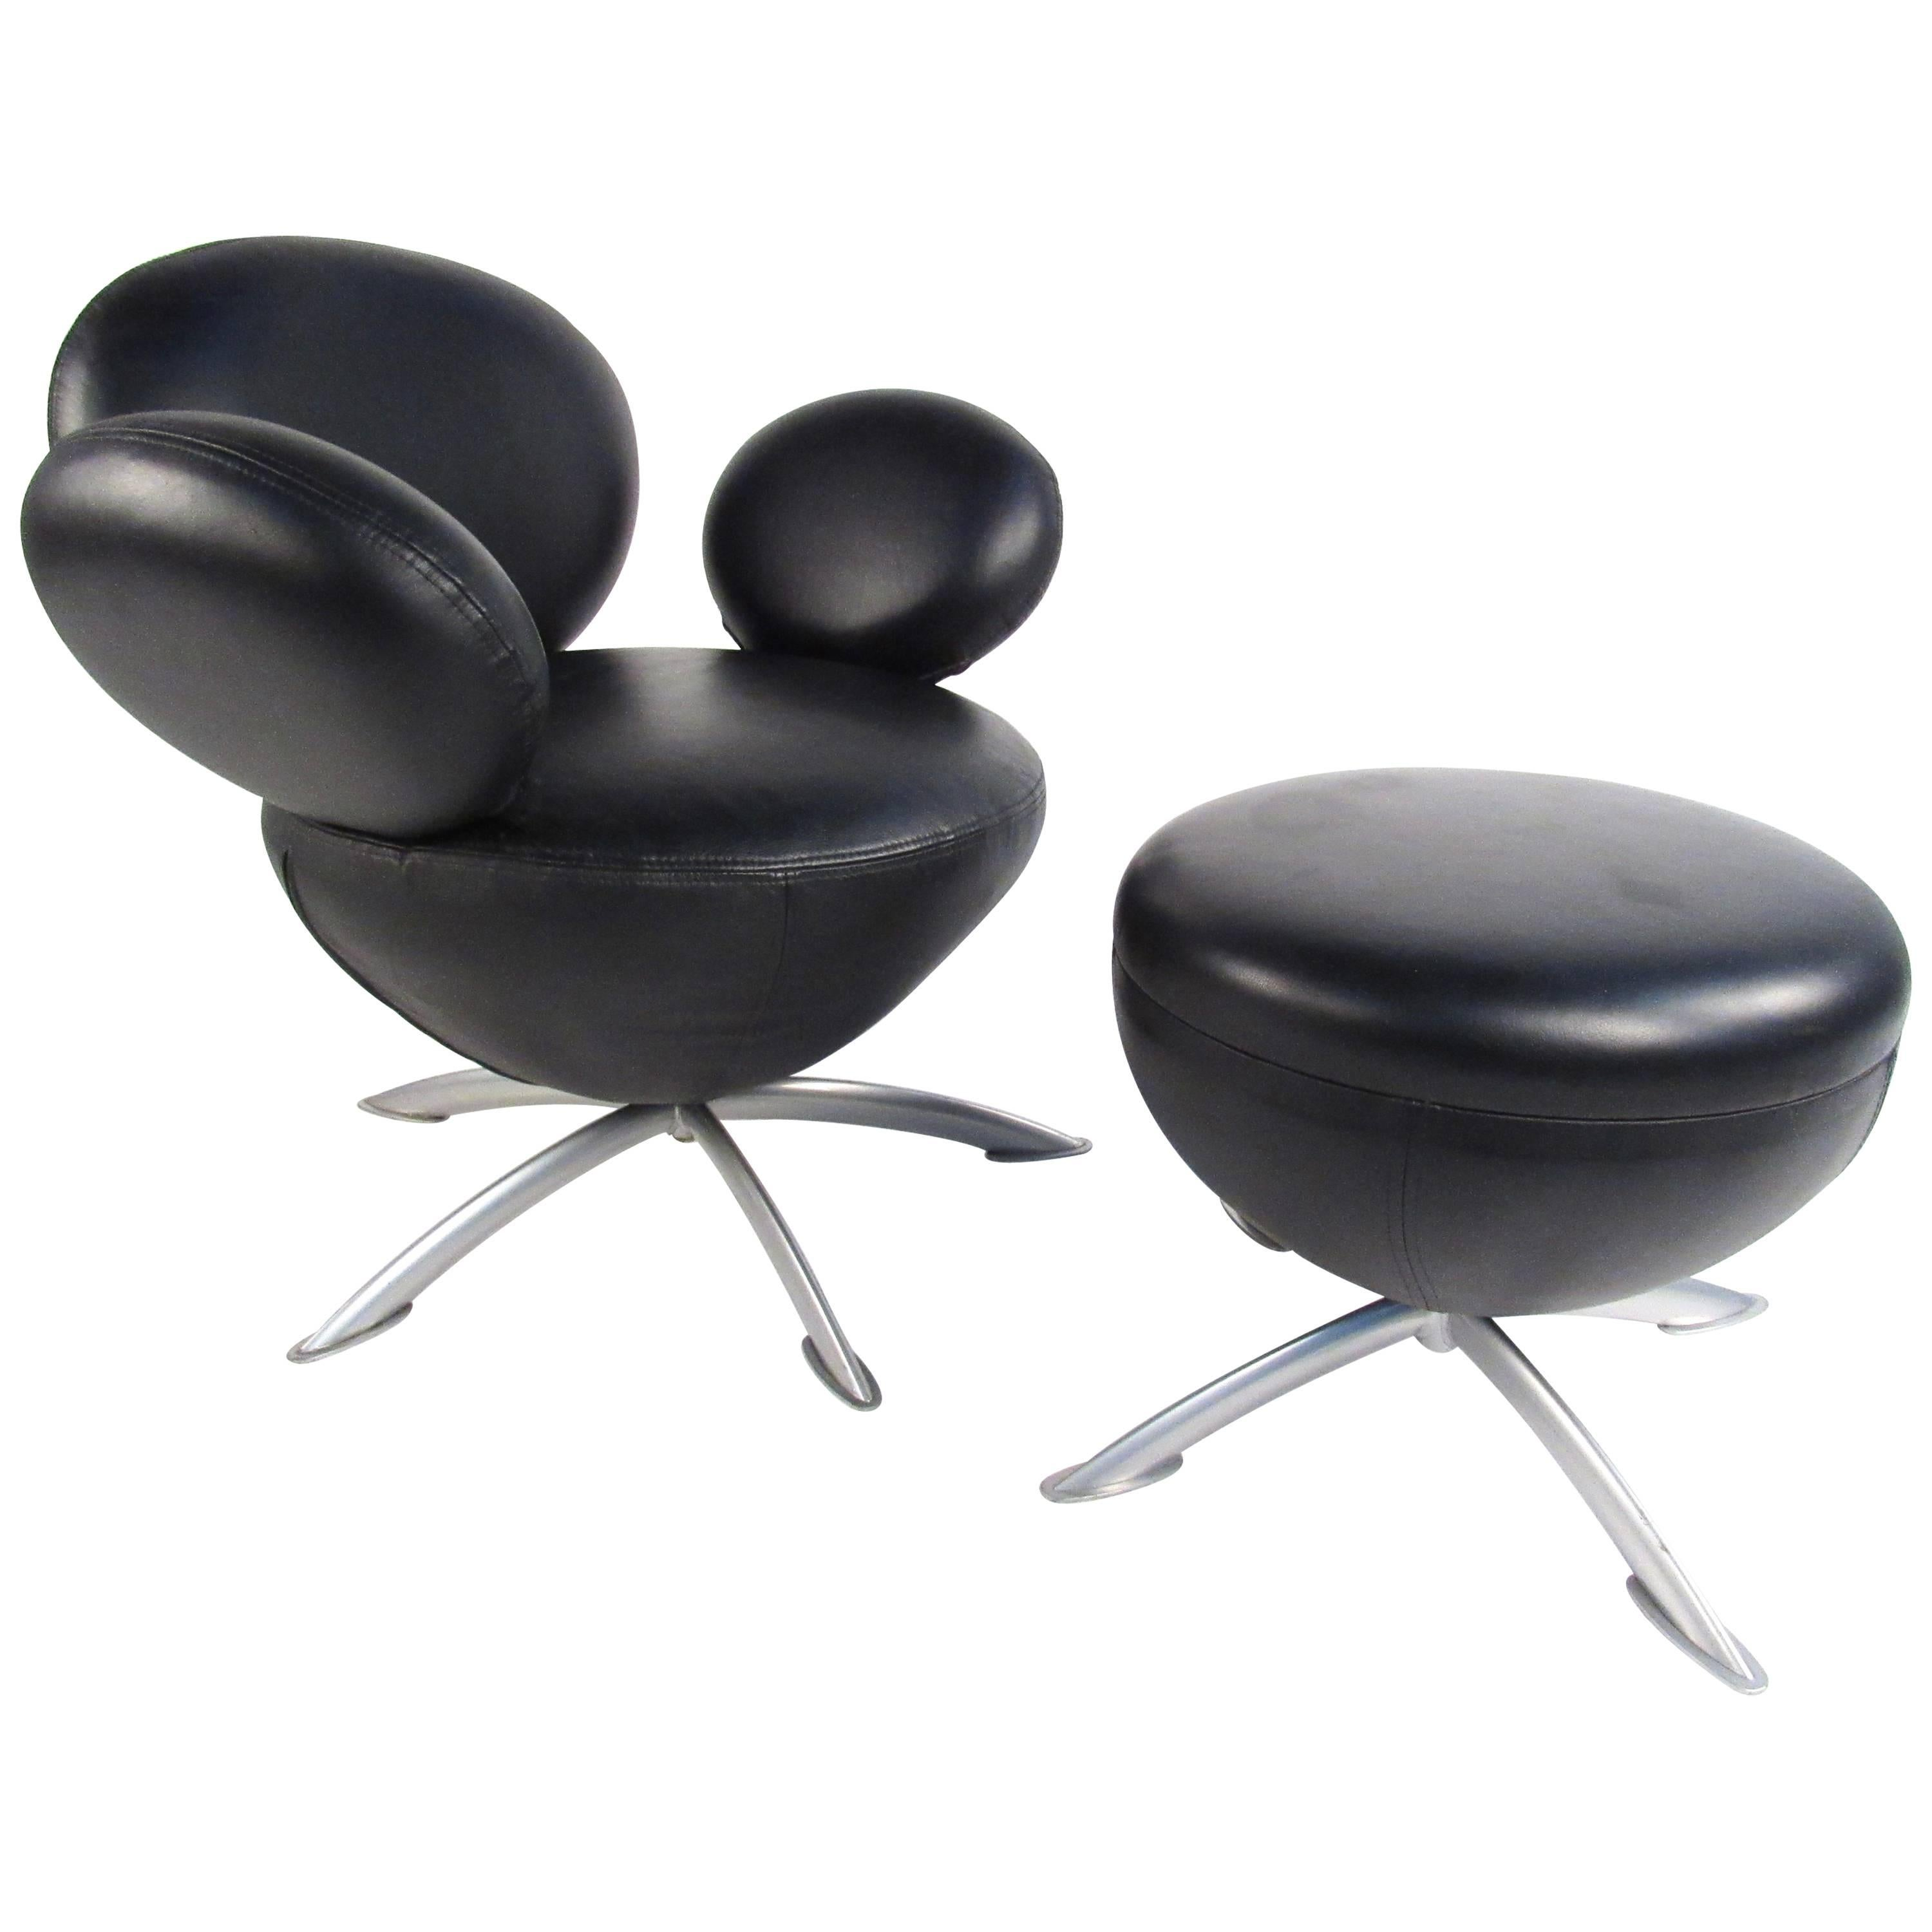 Swivel Lounge Chair With Ottoman after Arne Jacobsen